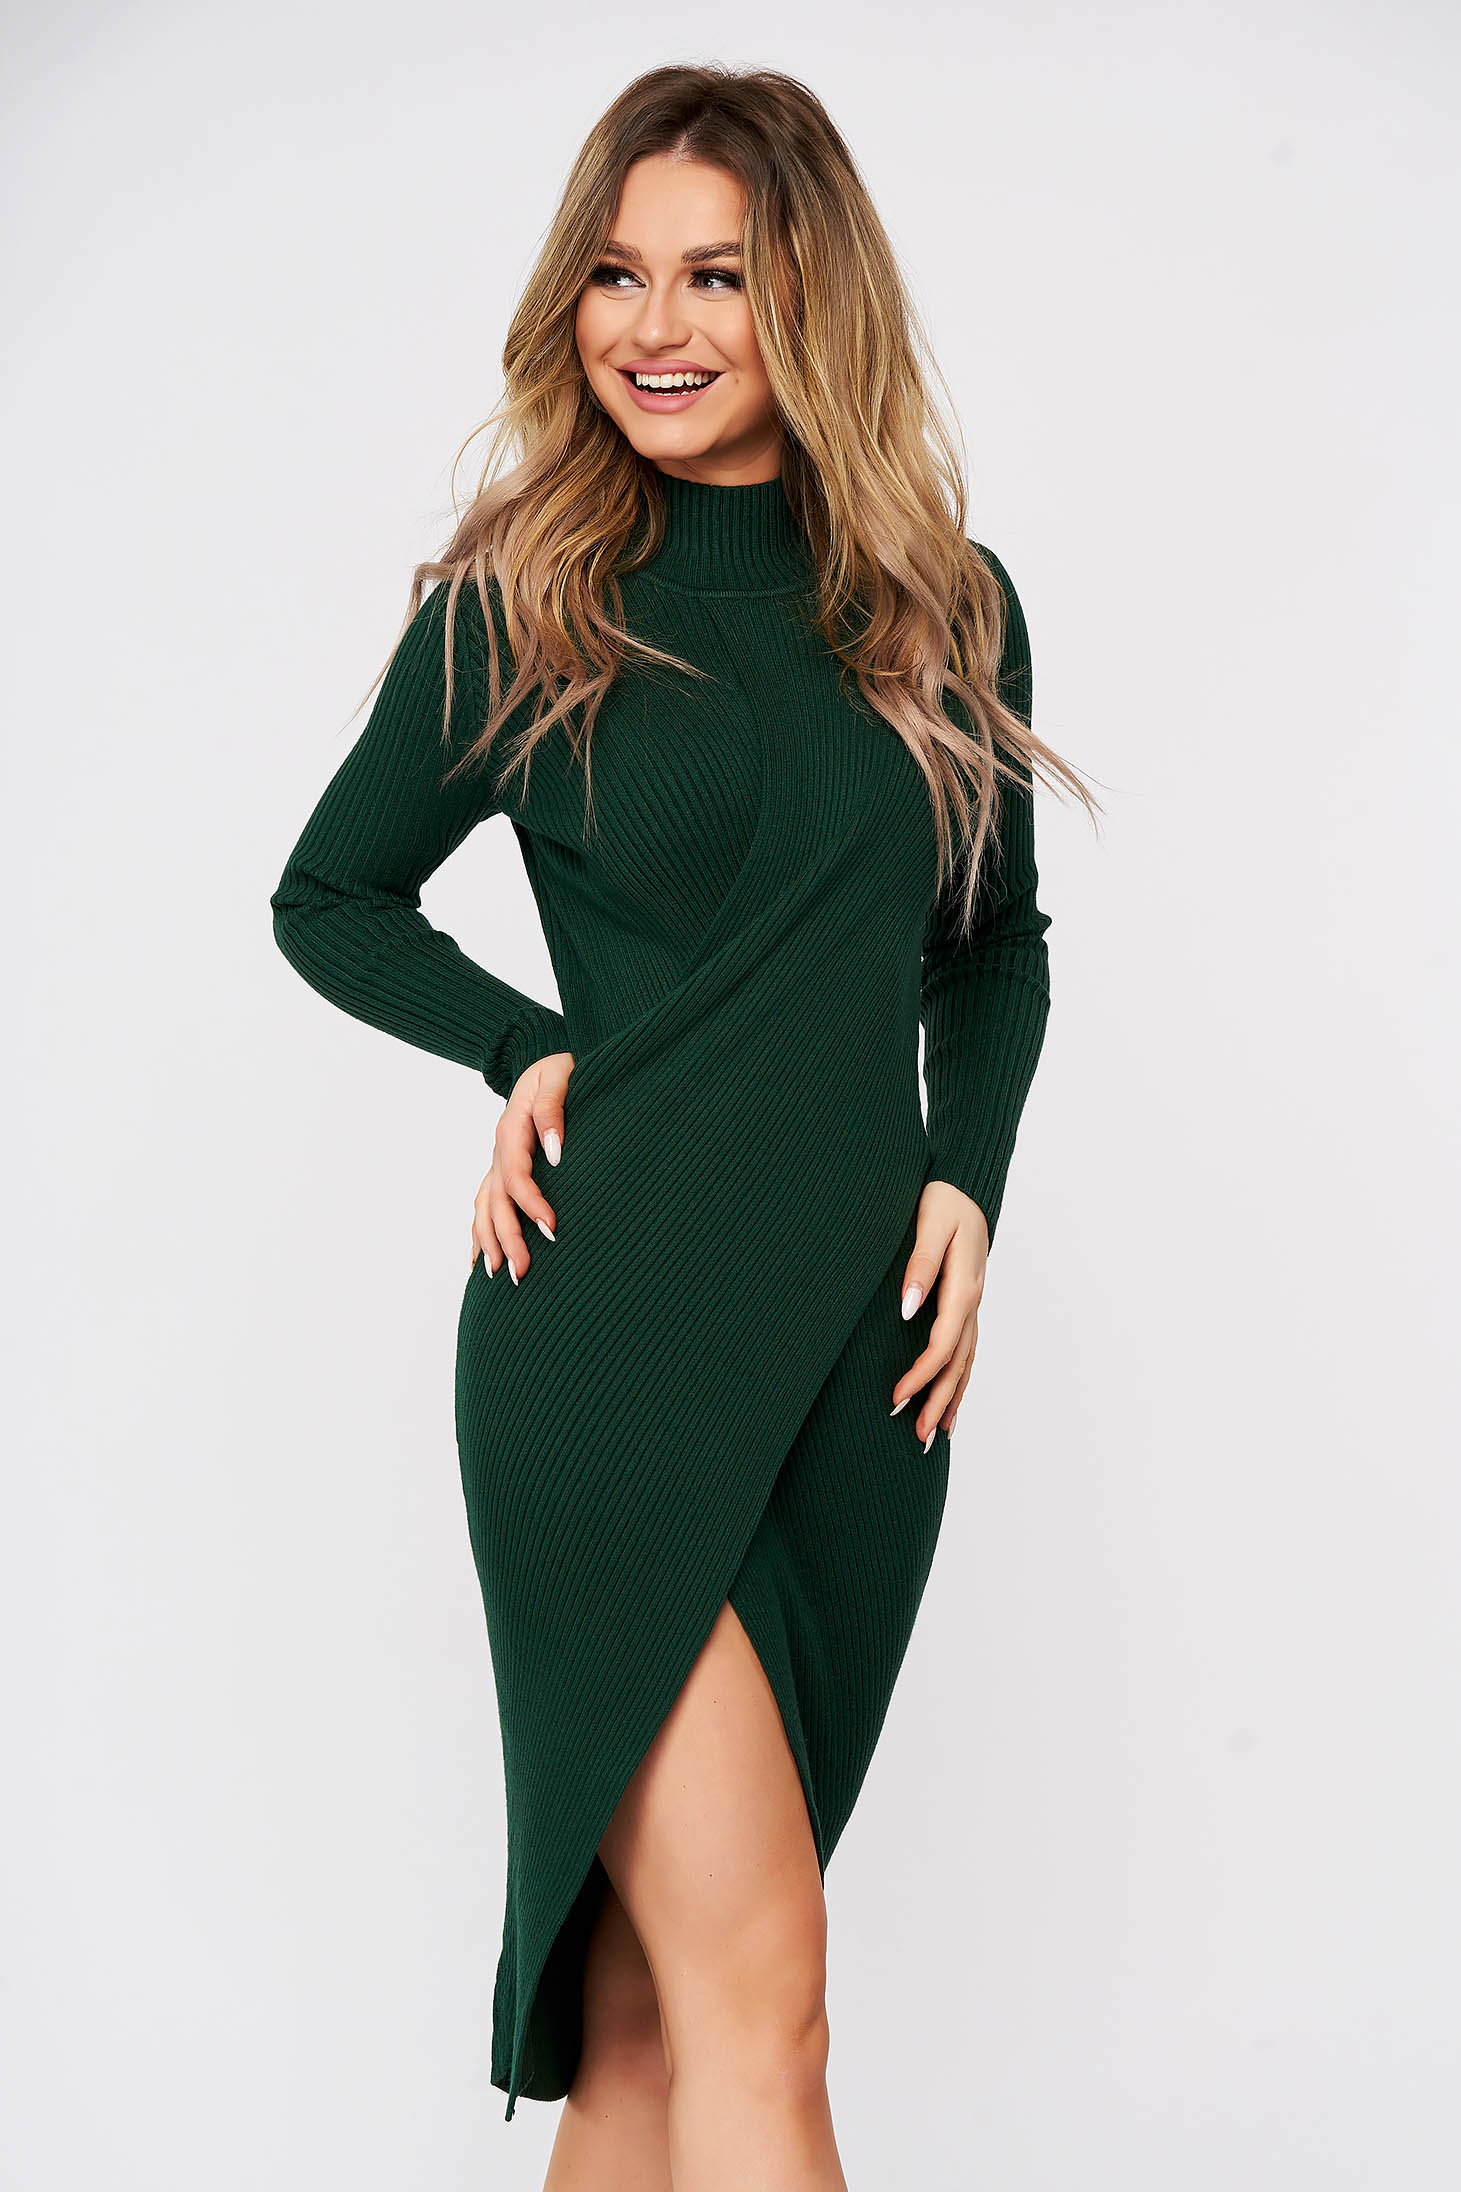 Green dress wrap over skirt slit knitted from striped fabric midi